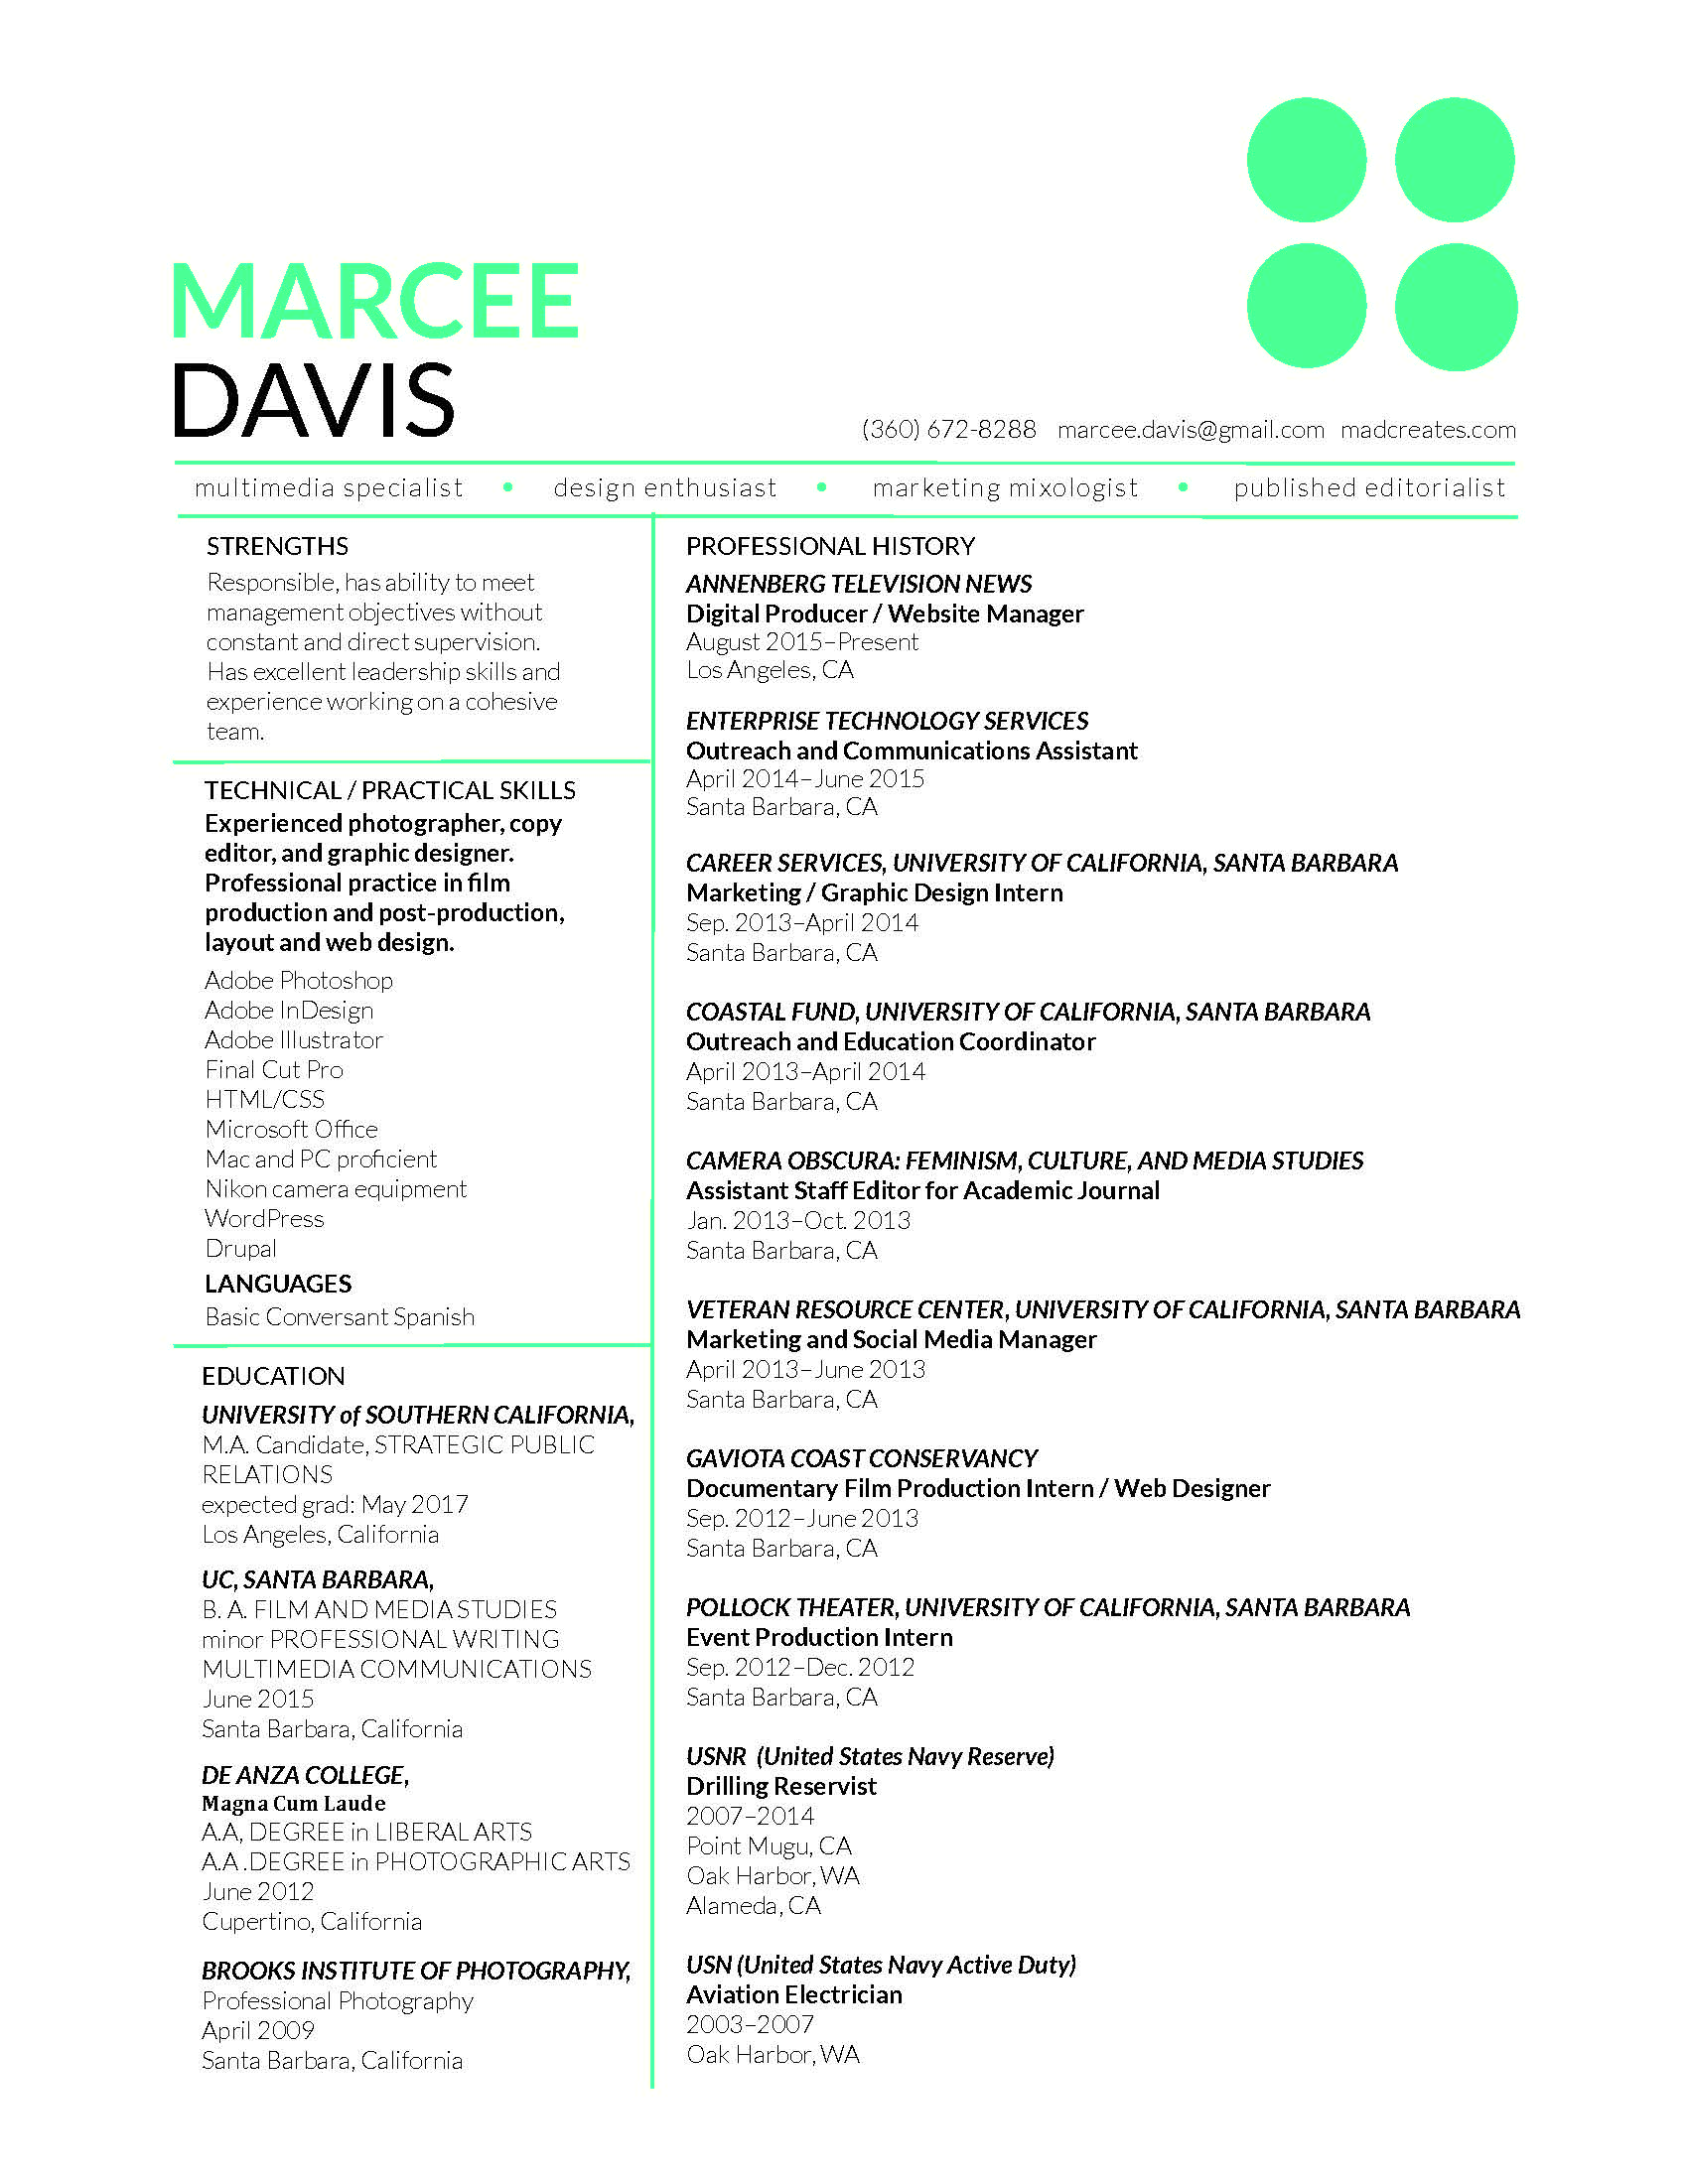 mixologist resume example modified dokdo kcv x kcv x k image